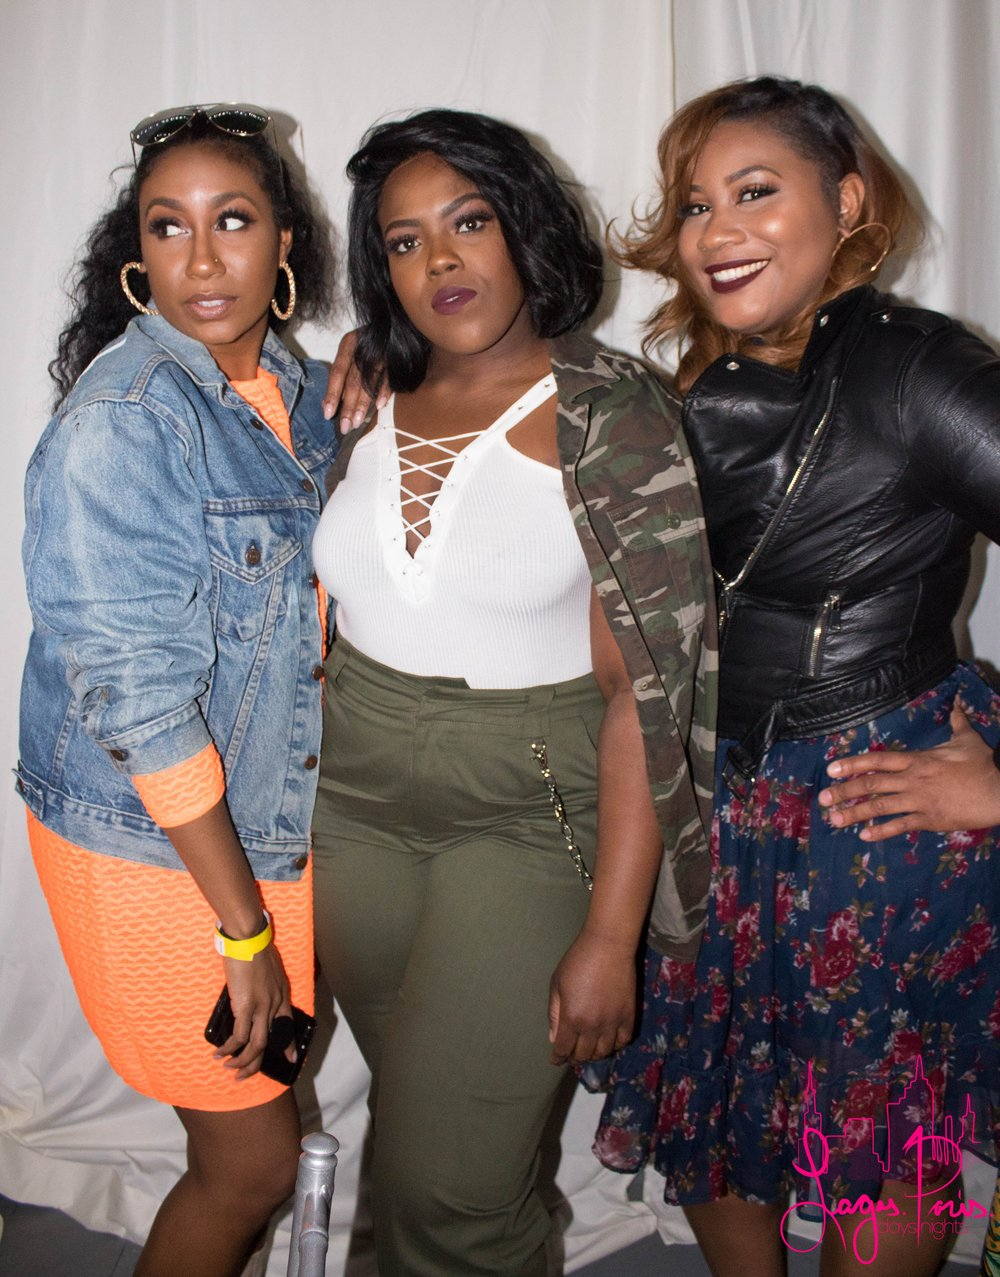 Angela Bailey (left), Nehemie August (center) and friend with the effortless slay.